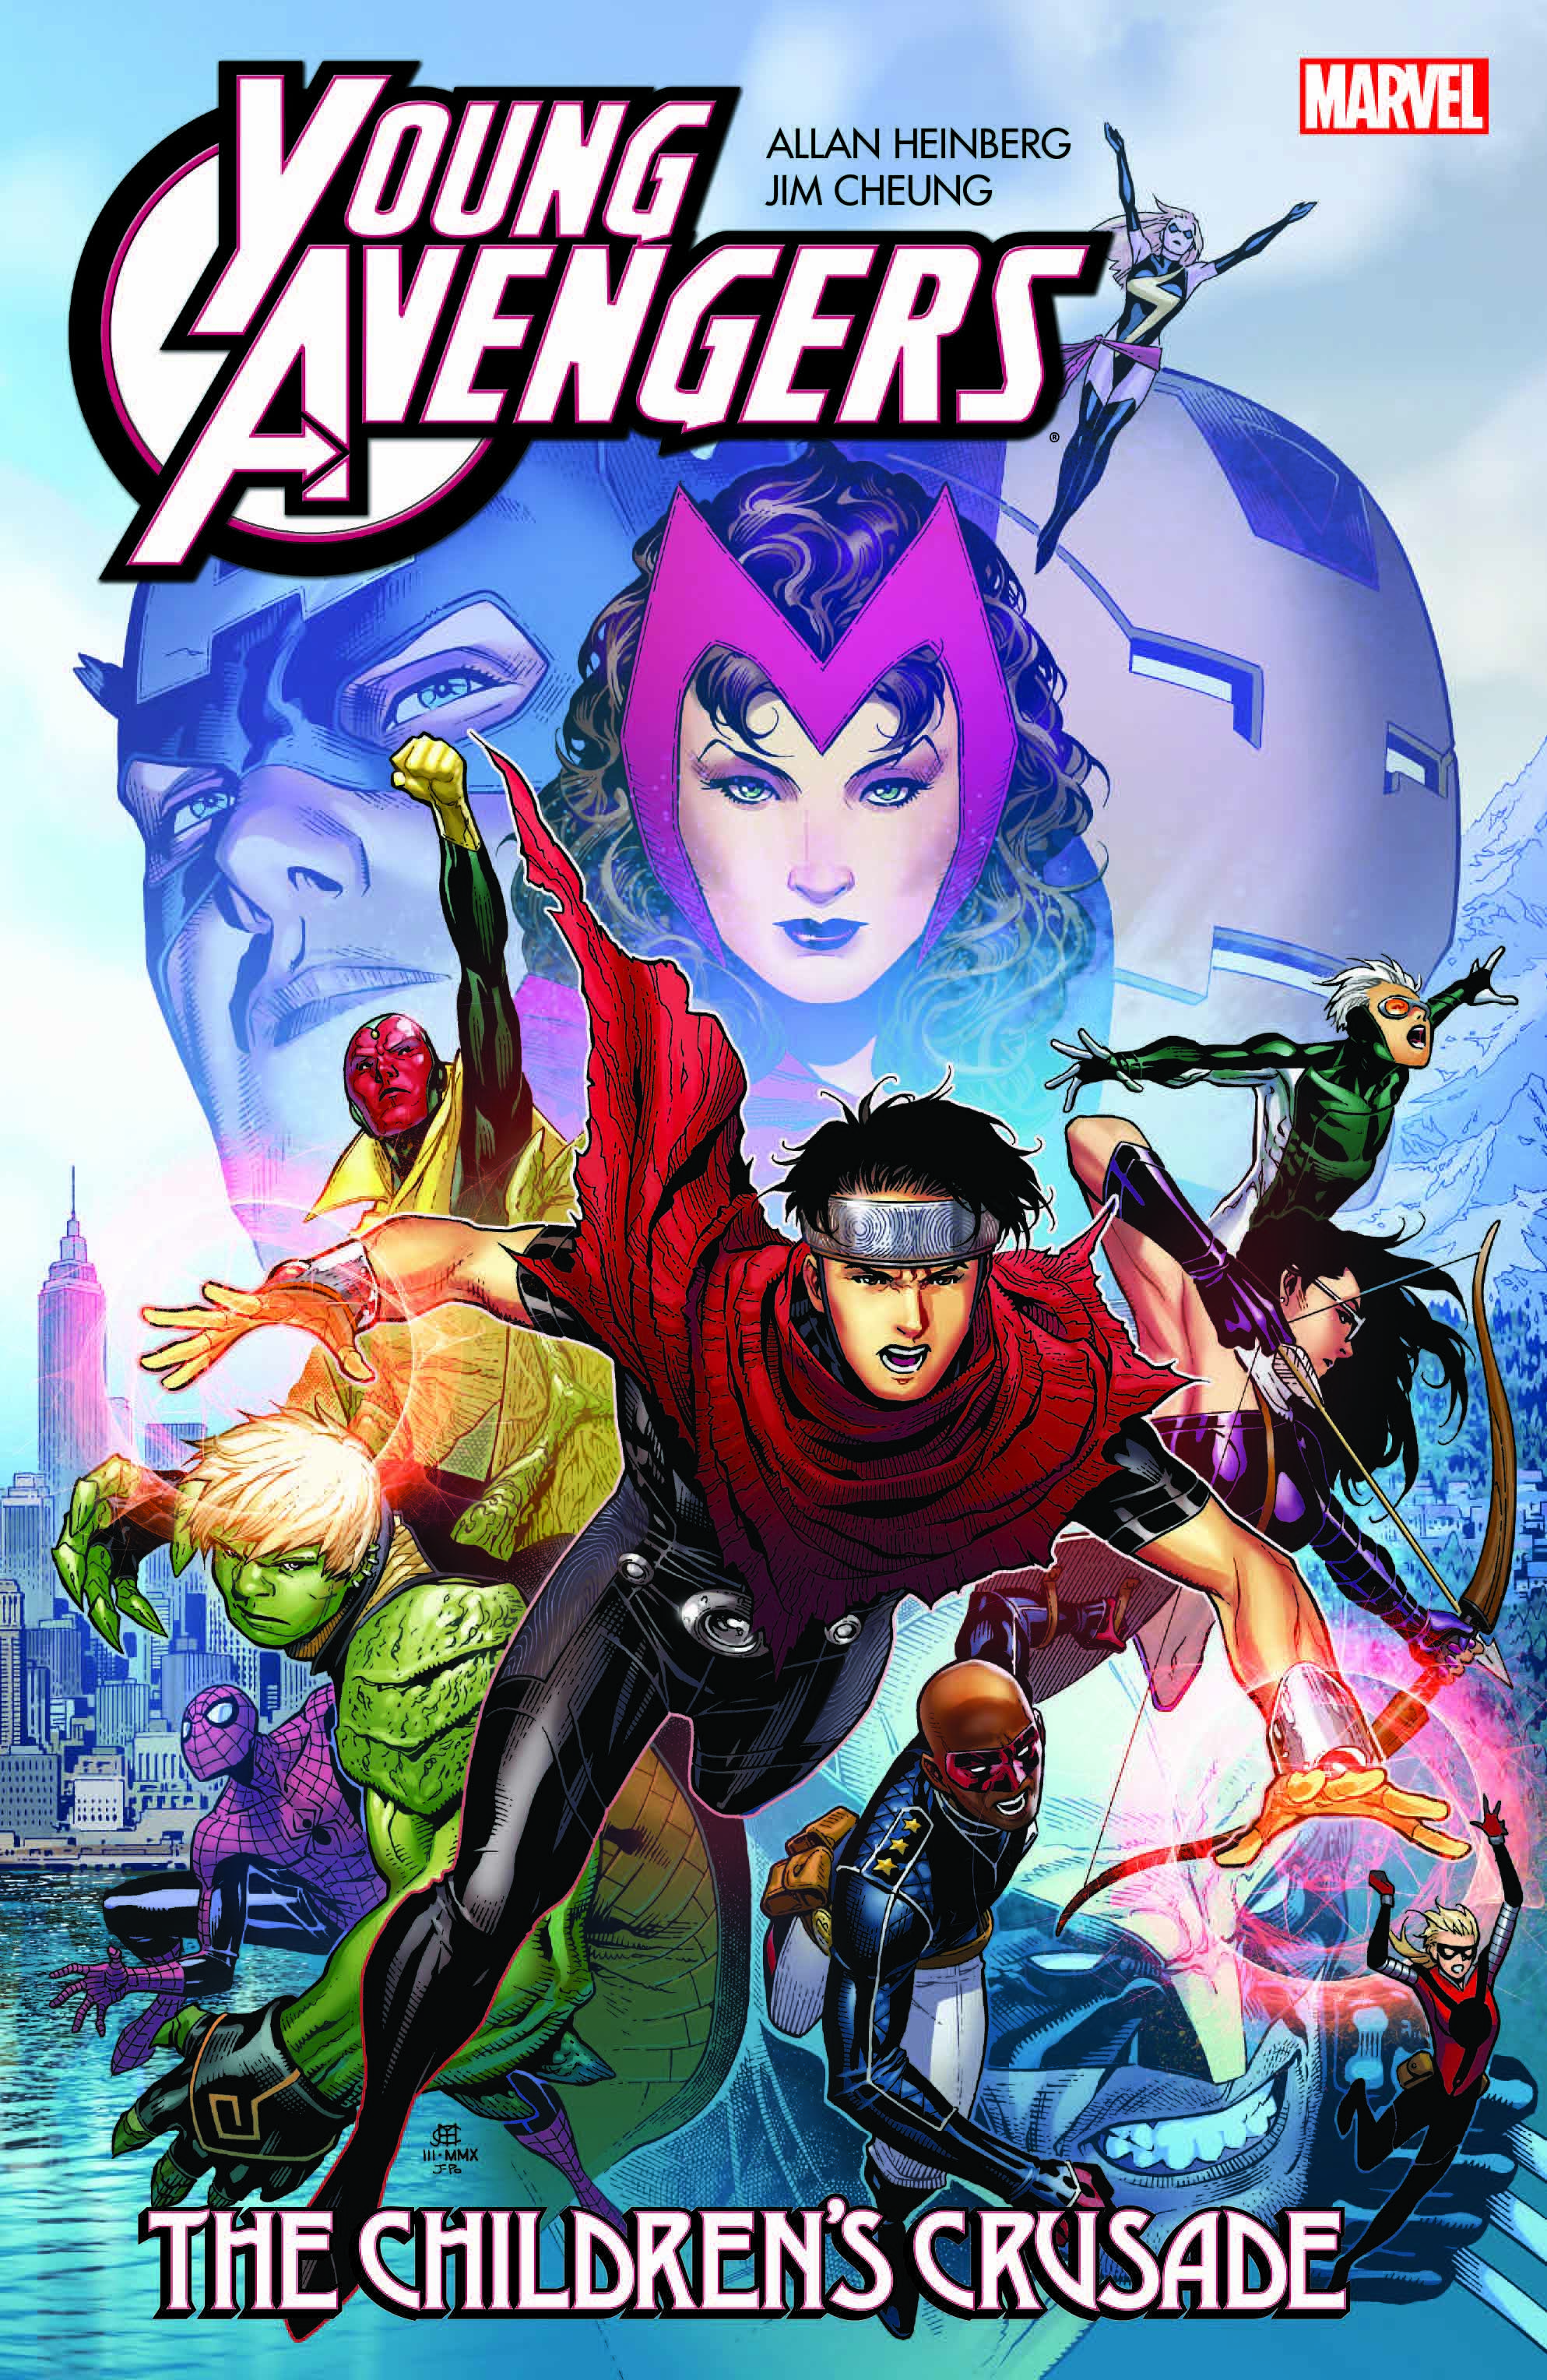 Young Avengers by Allan Heinberg & Jim Cheung: The Children's Crusade (Trade Paperback)